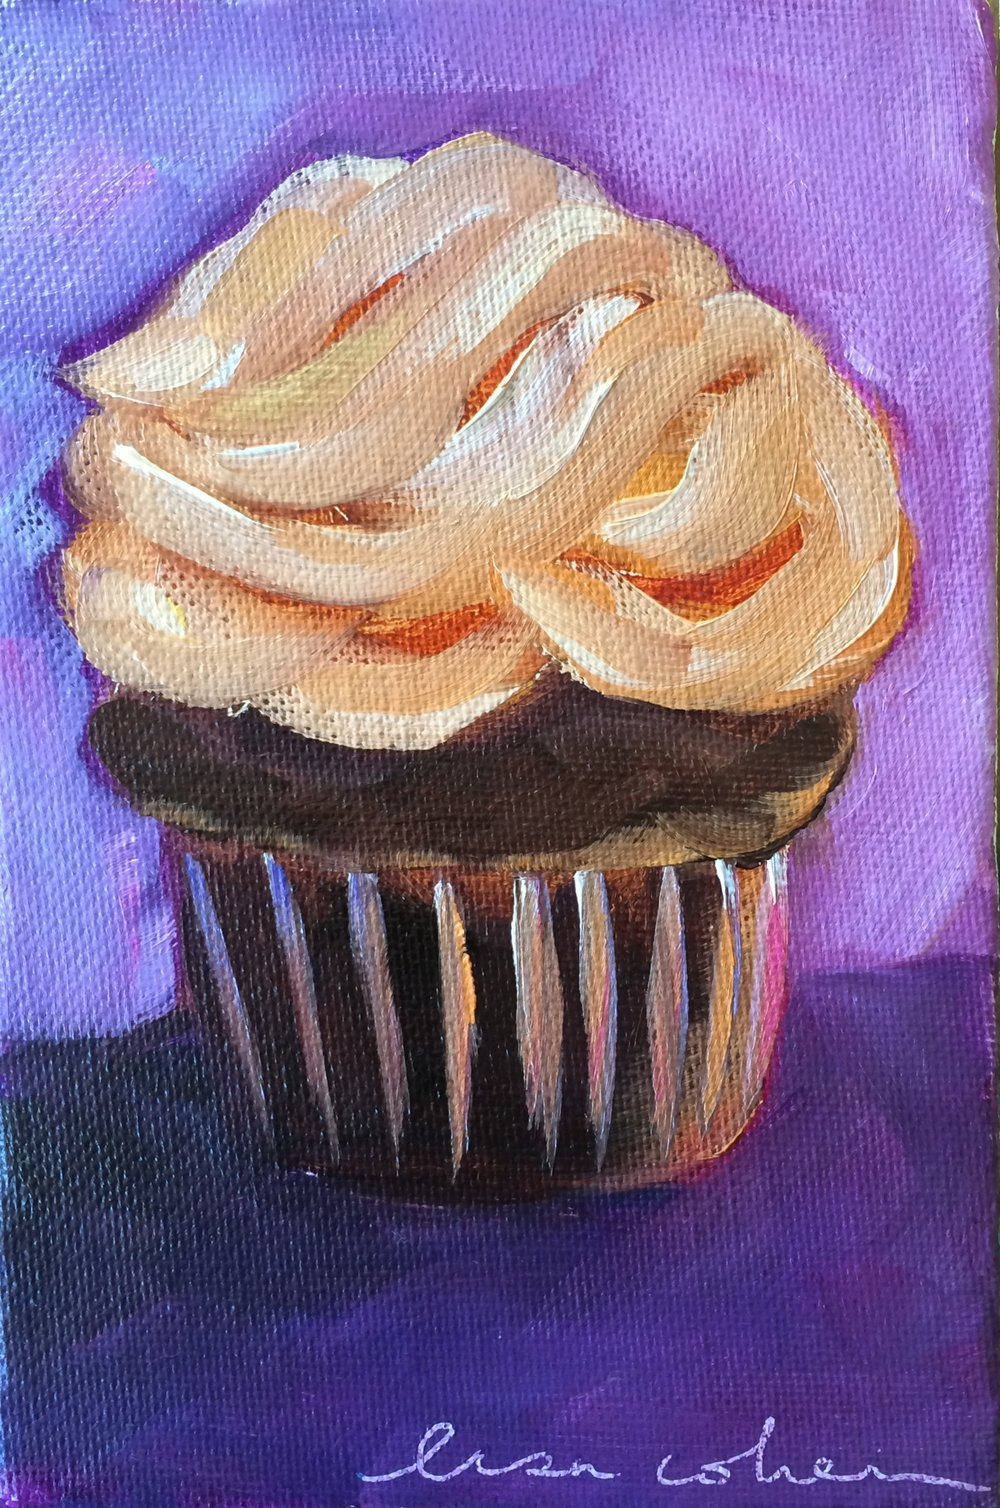 85 Just Peachy Cupcake Original Painting - Lisa Cohen.jpg